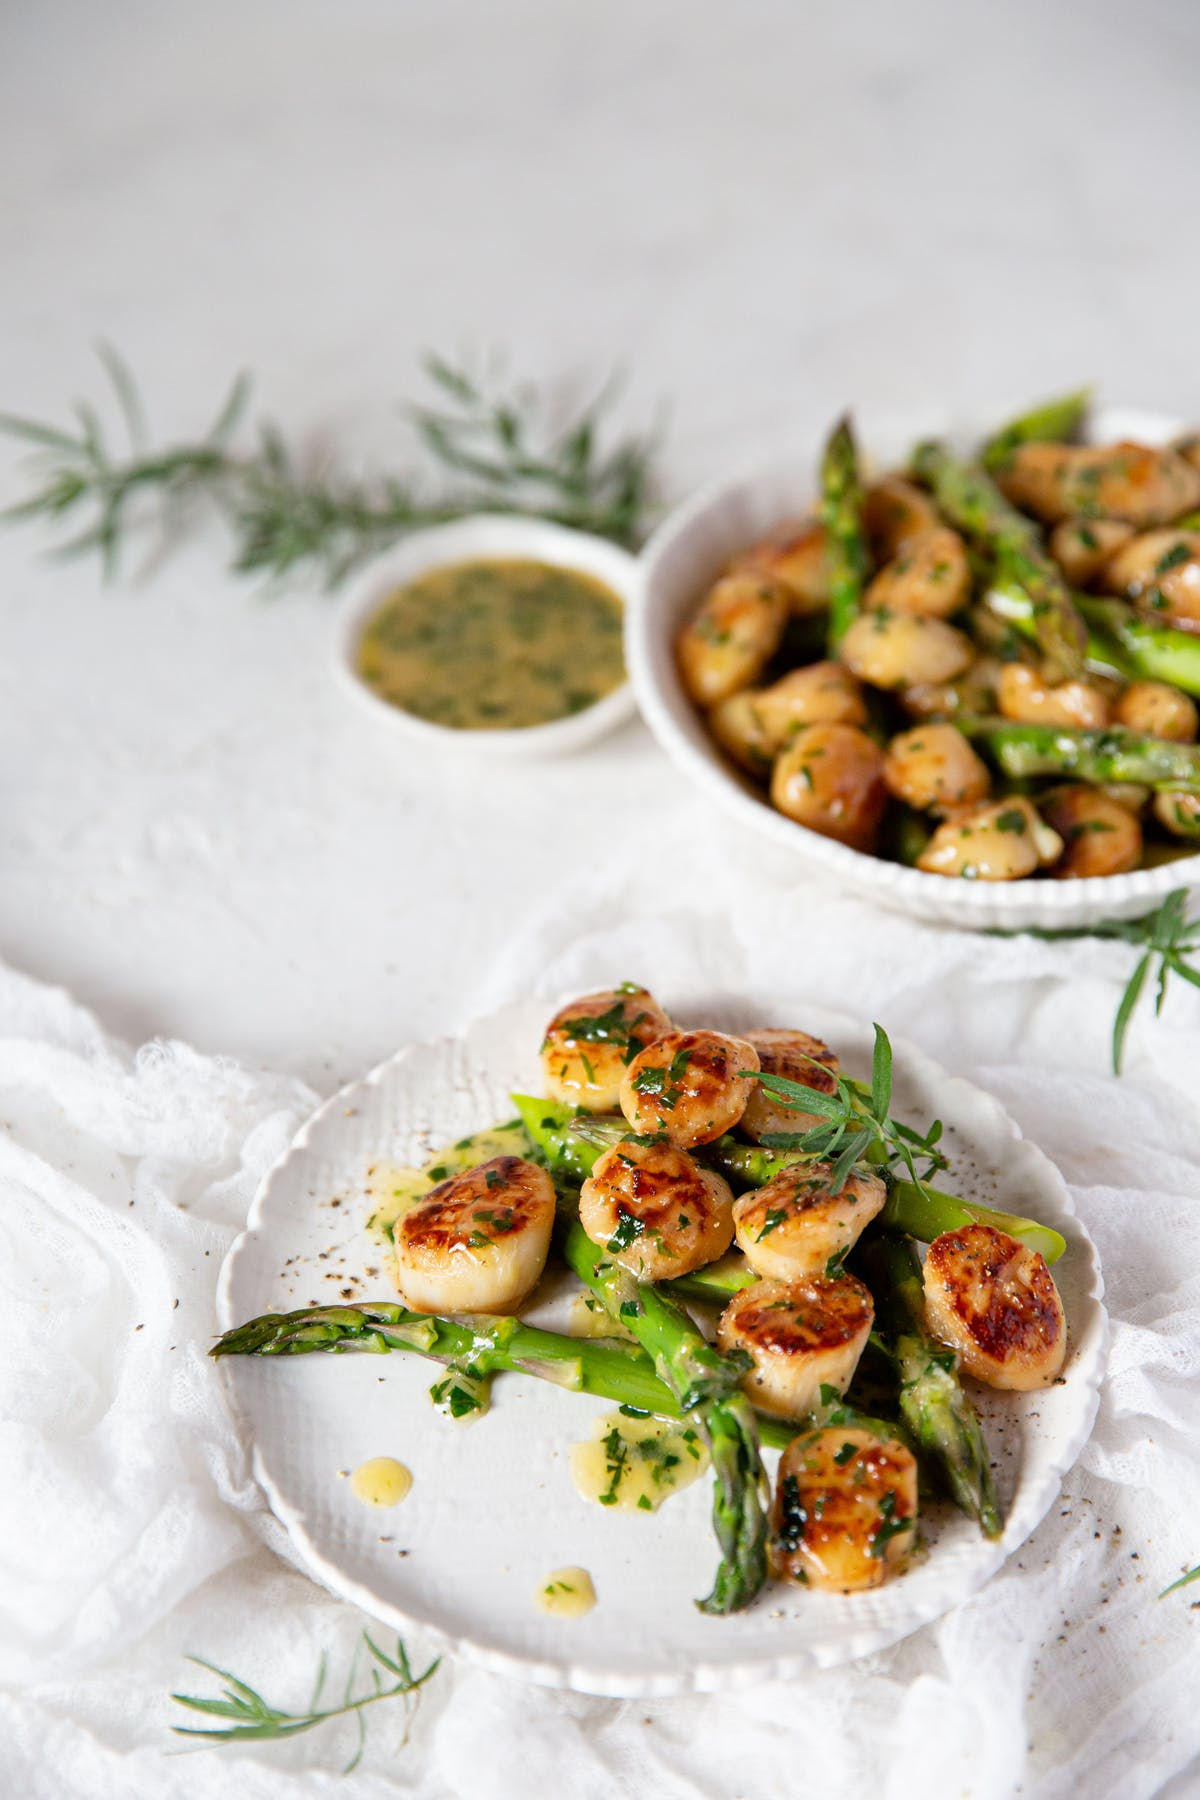 Seared scallops with tarragon butter